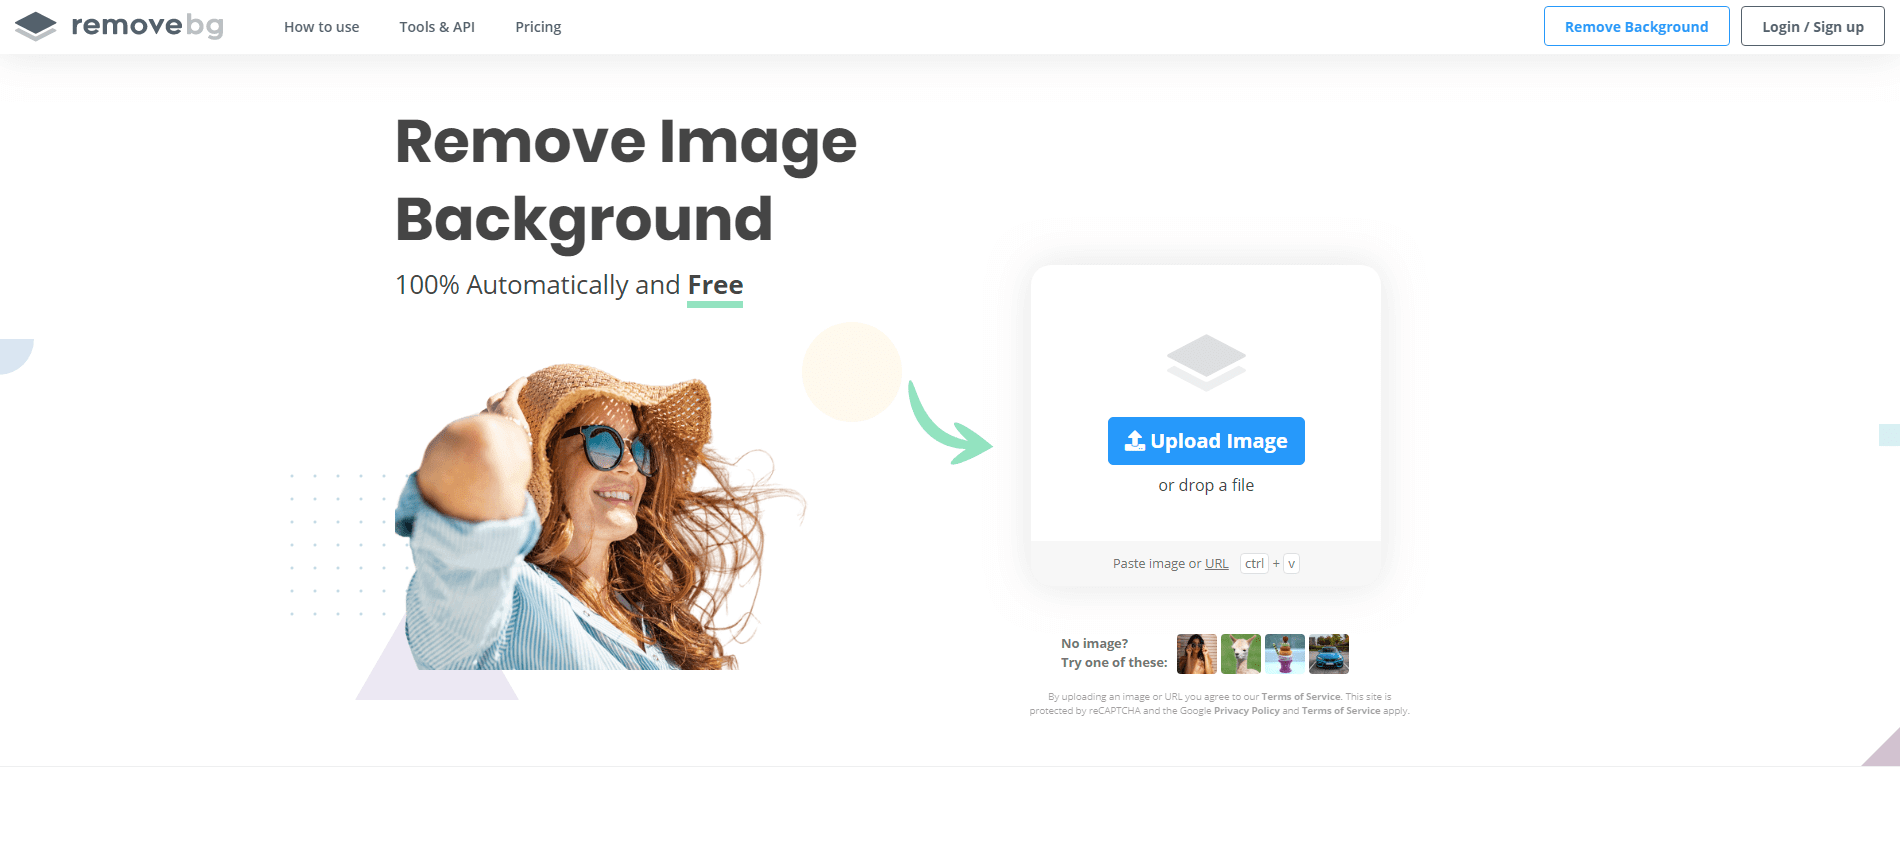 Removebg - Remove Image Background For Free-min